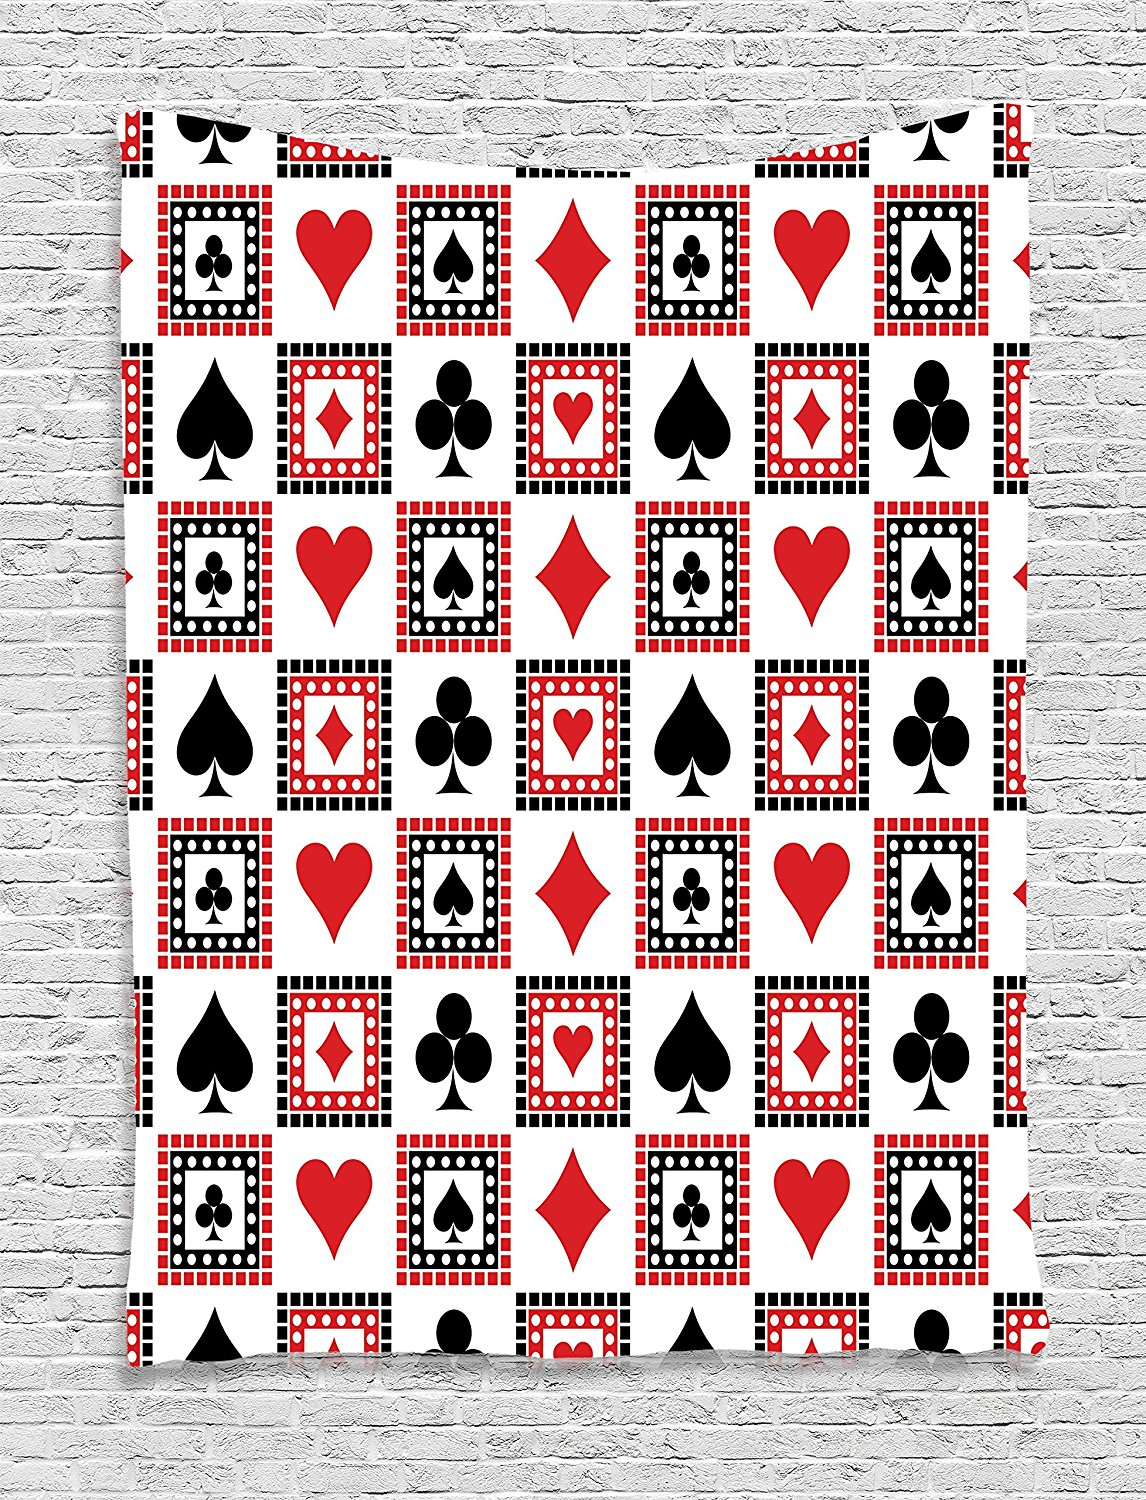 Casino Decorations Tapestry by, Icons Of Playings Cards Symmetrical Geometric Repeating Ornamental, Wall Hanging for Bedroom